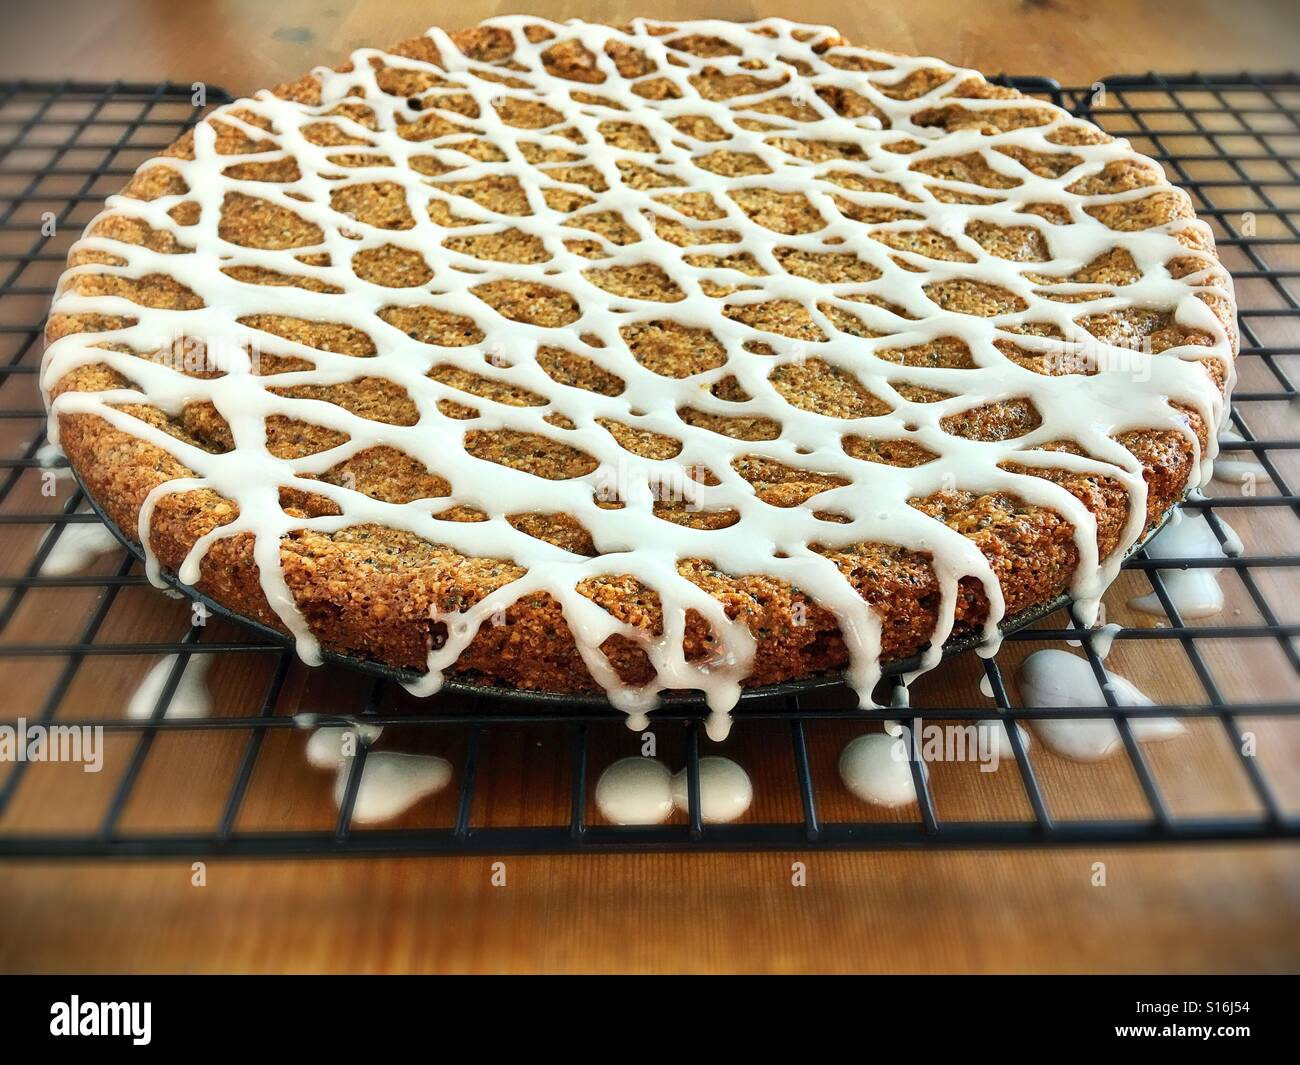 An almond poppyseed cake on a cooling rack. - Stock Image